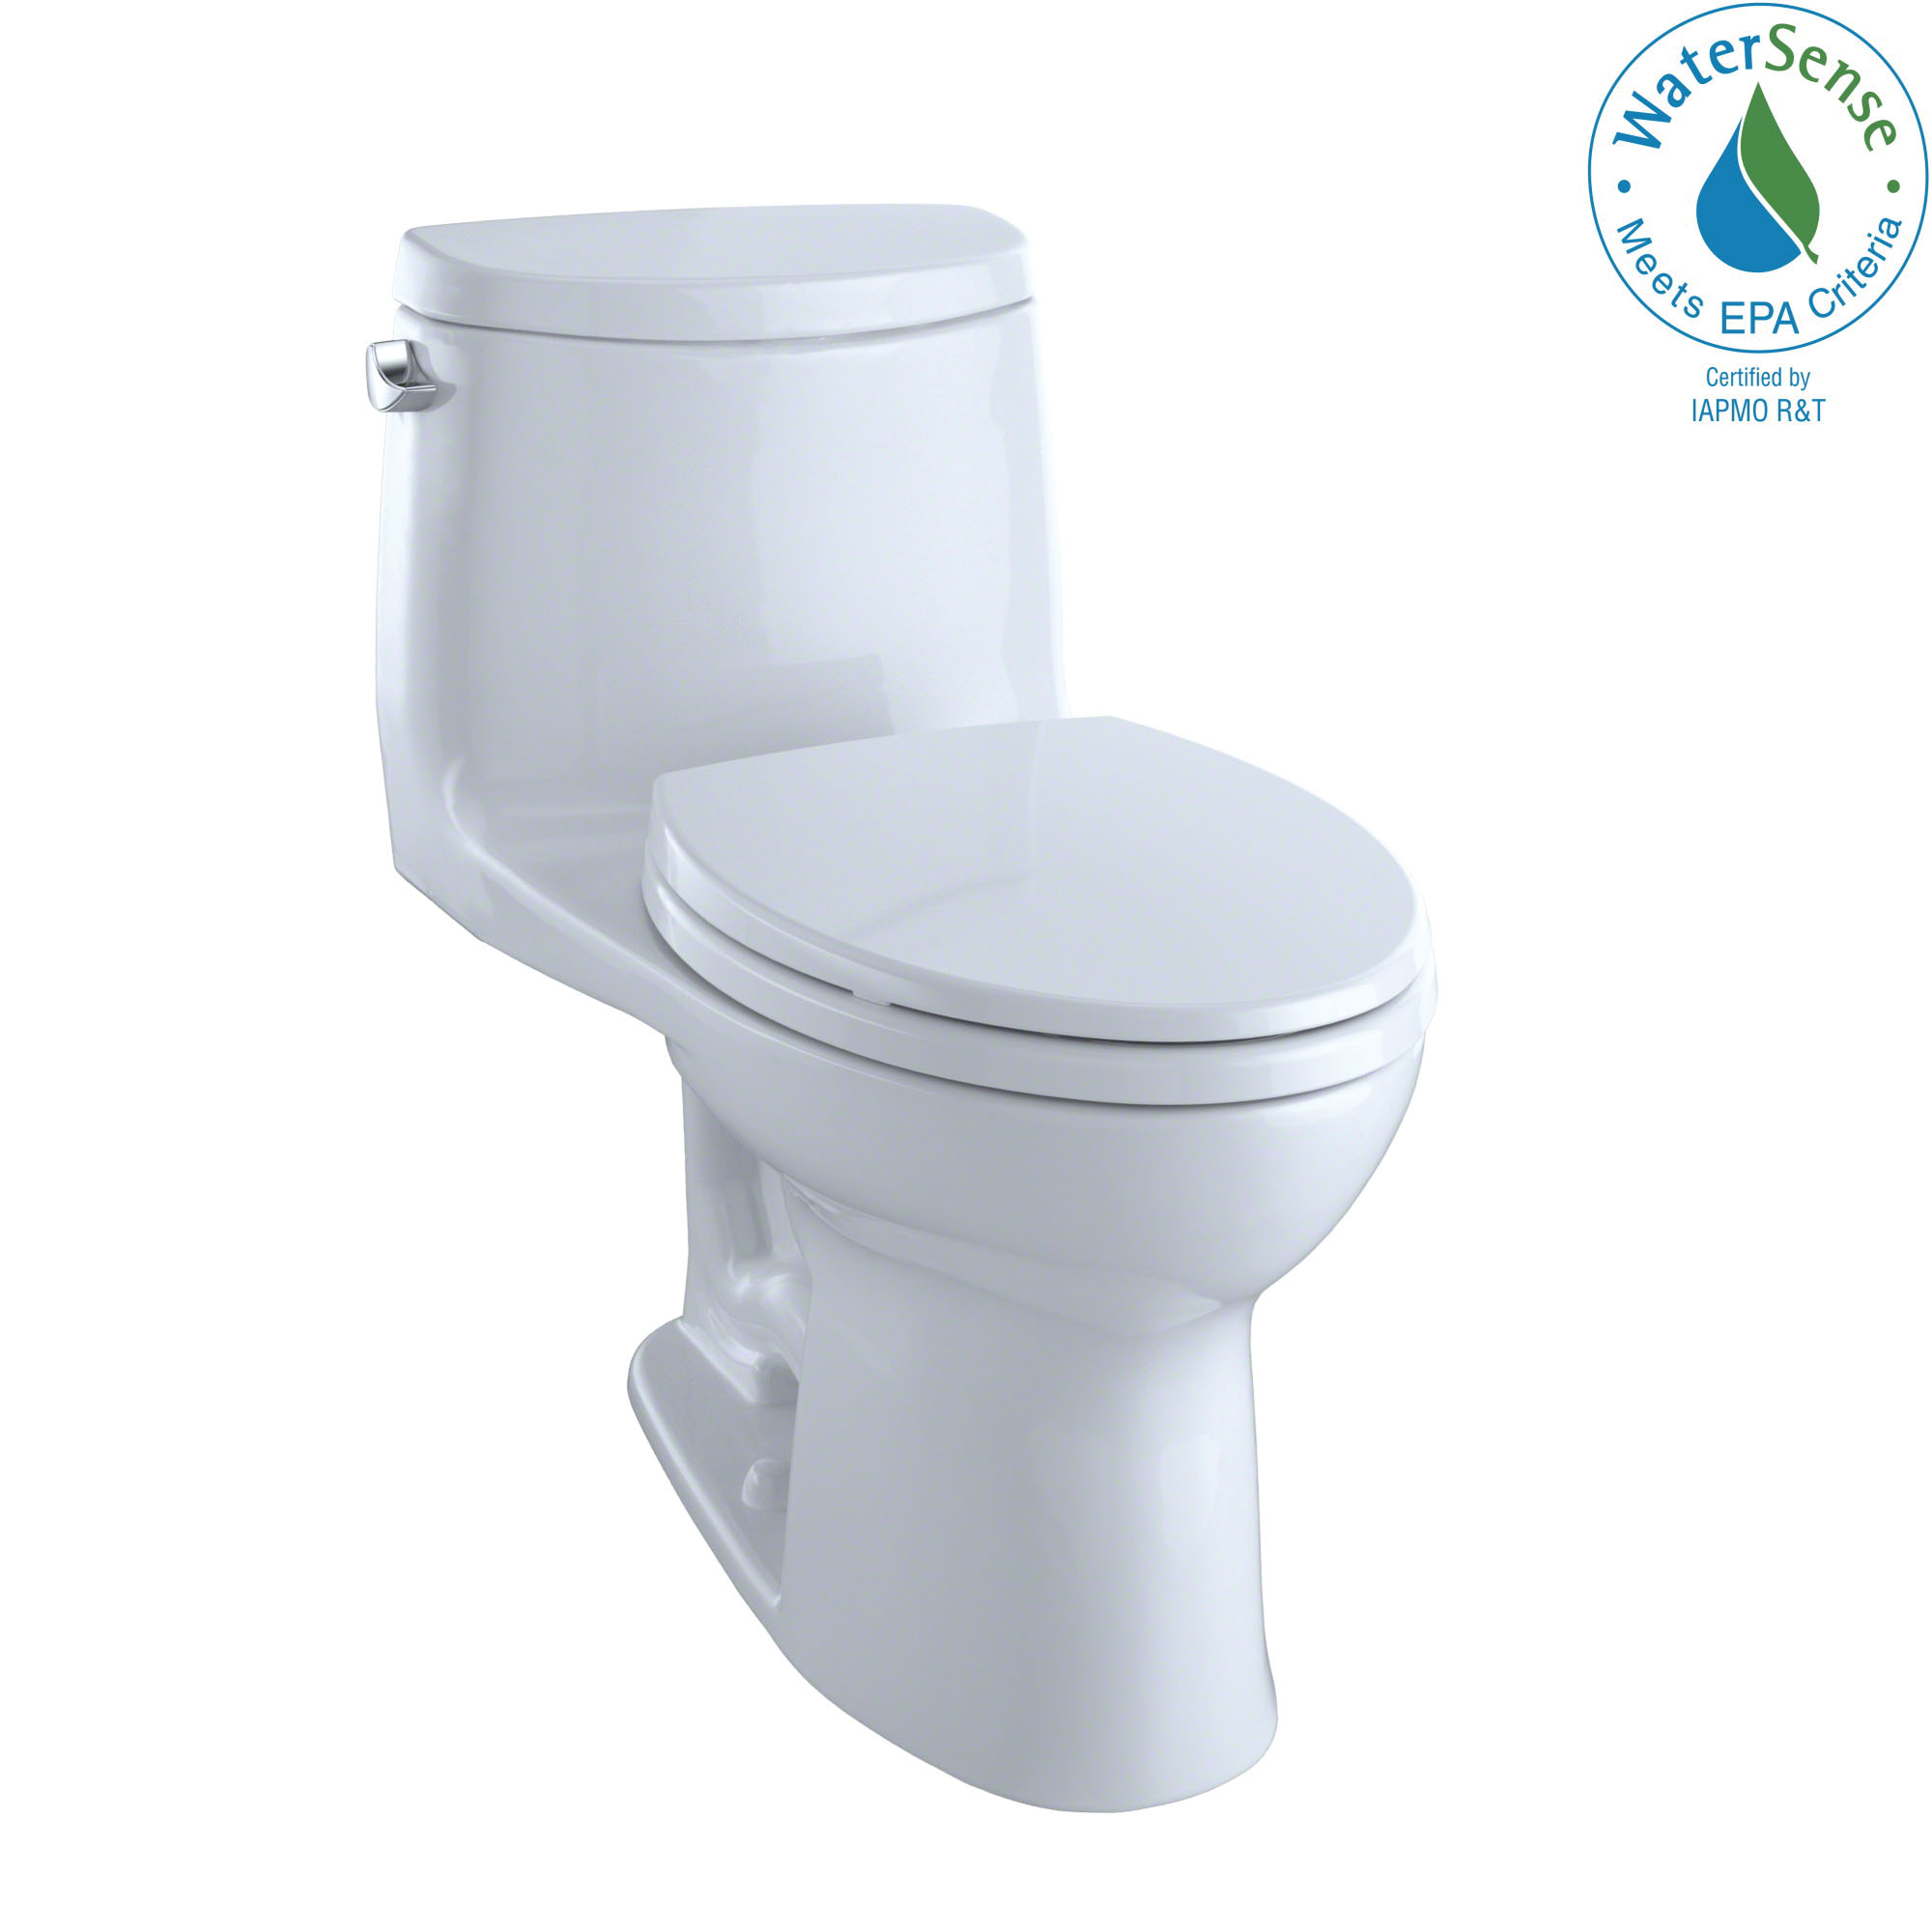 Toto® UltraMax® II MS604114CEFG#01 1-Piece Universal Height Toilet, Elongated Front Bowl, 17-1/4 in H Rim, 12 in Rough-In, 1.28 gpf, Cotton White, Domestic